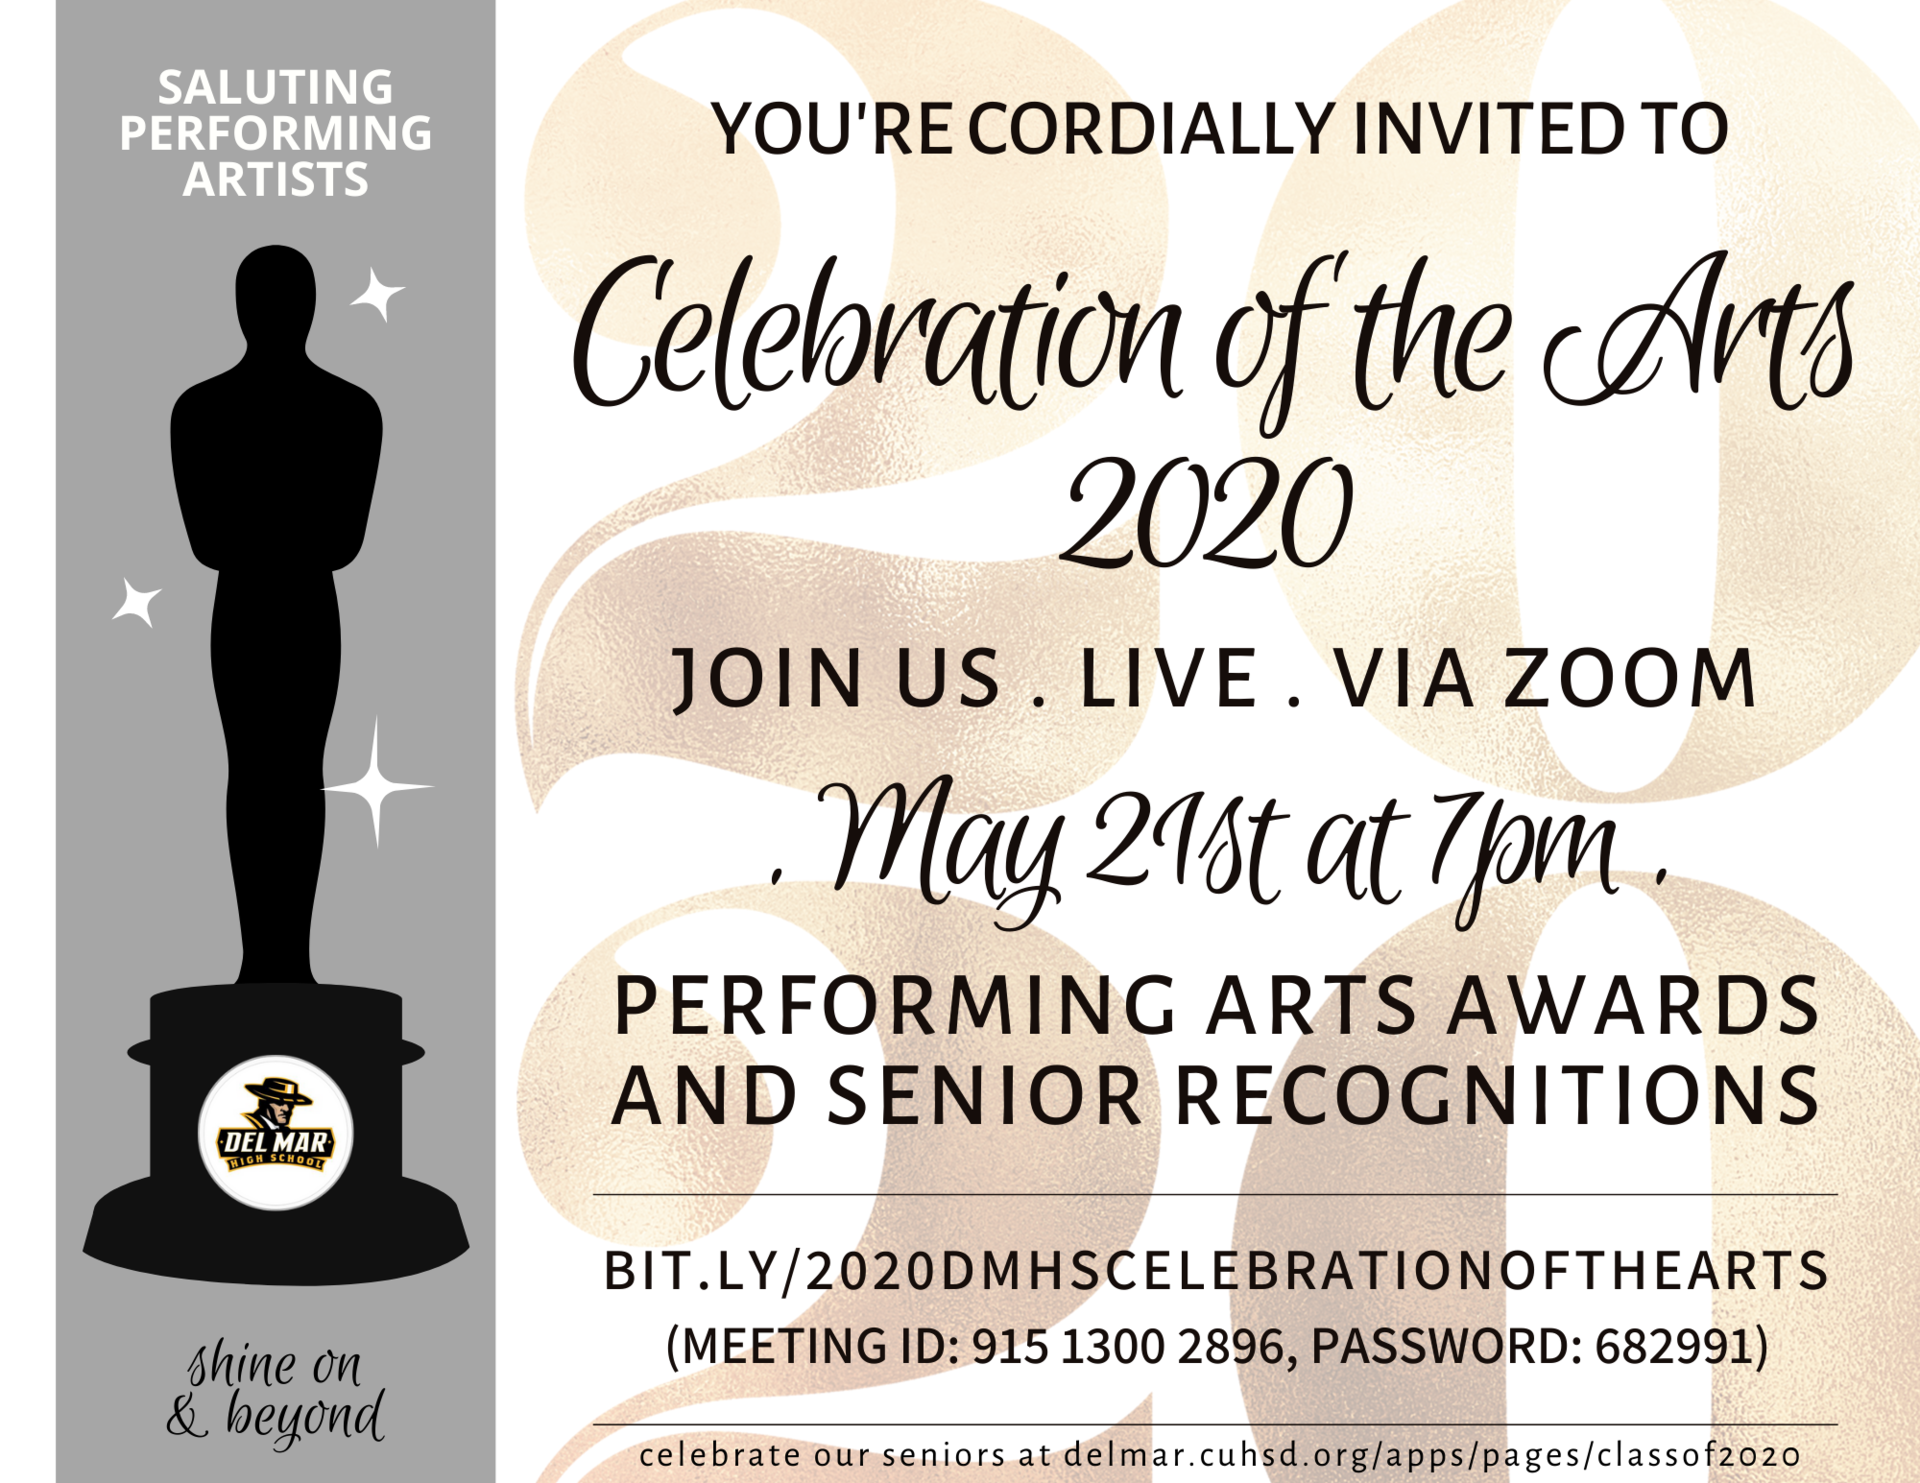 image of virtual celebration of the arts on may 21, 2020 invite